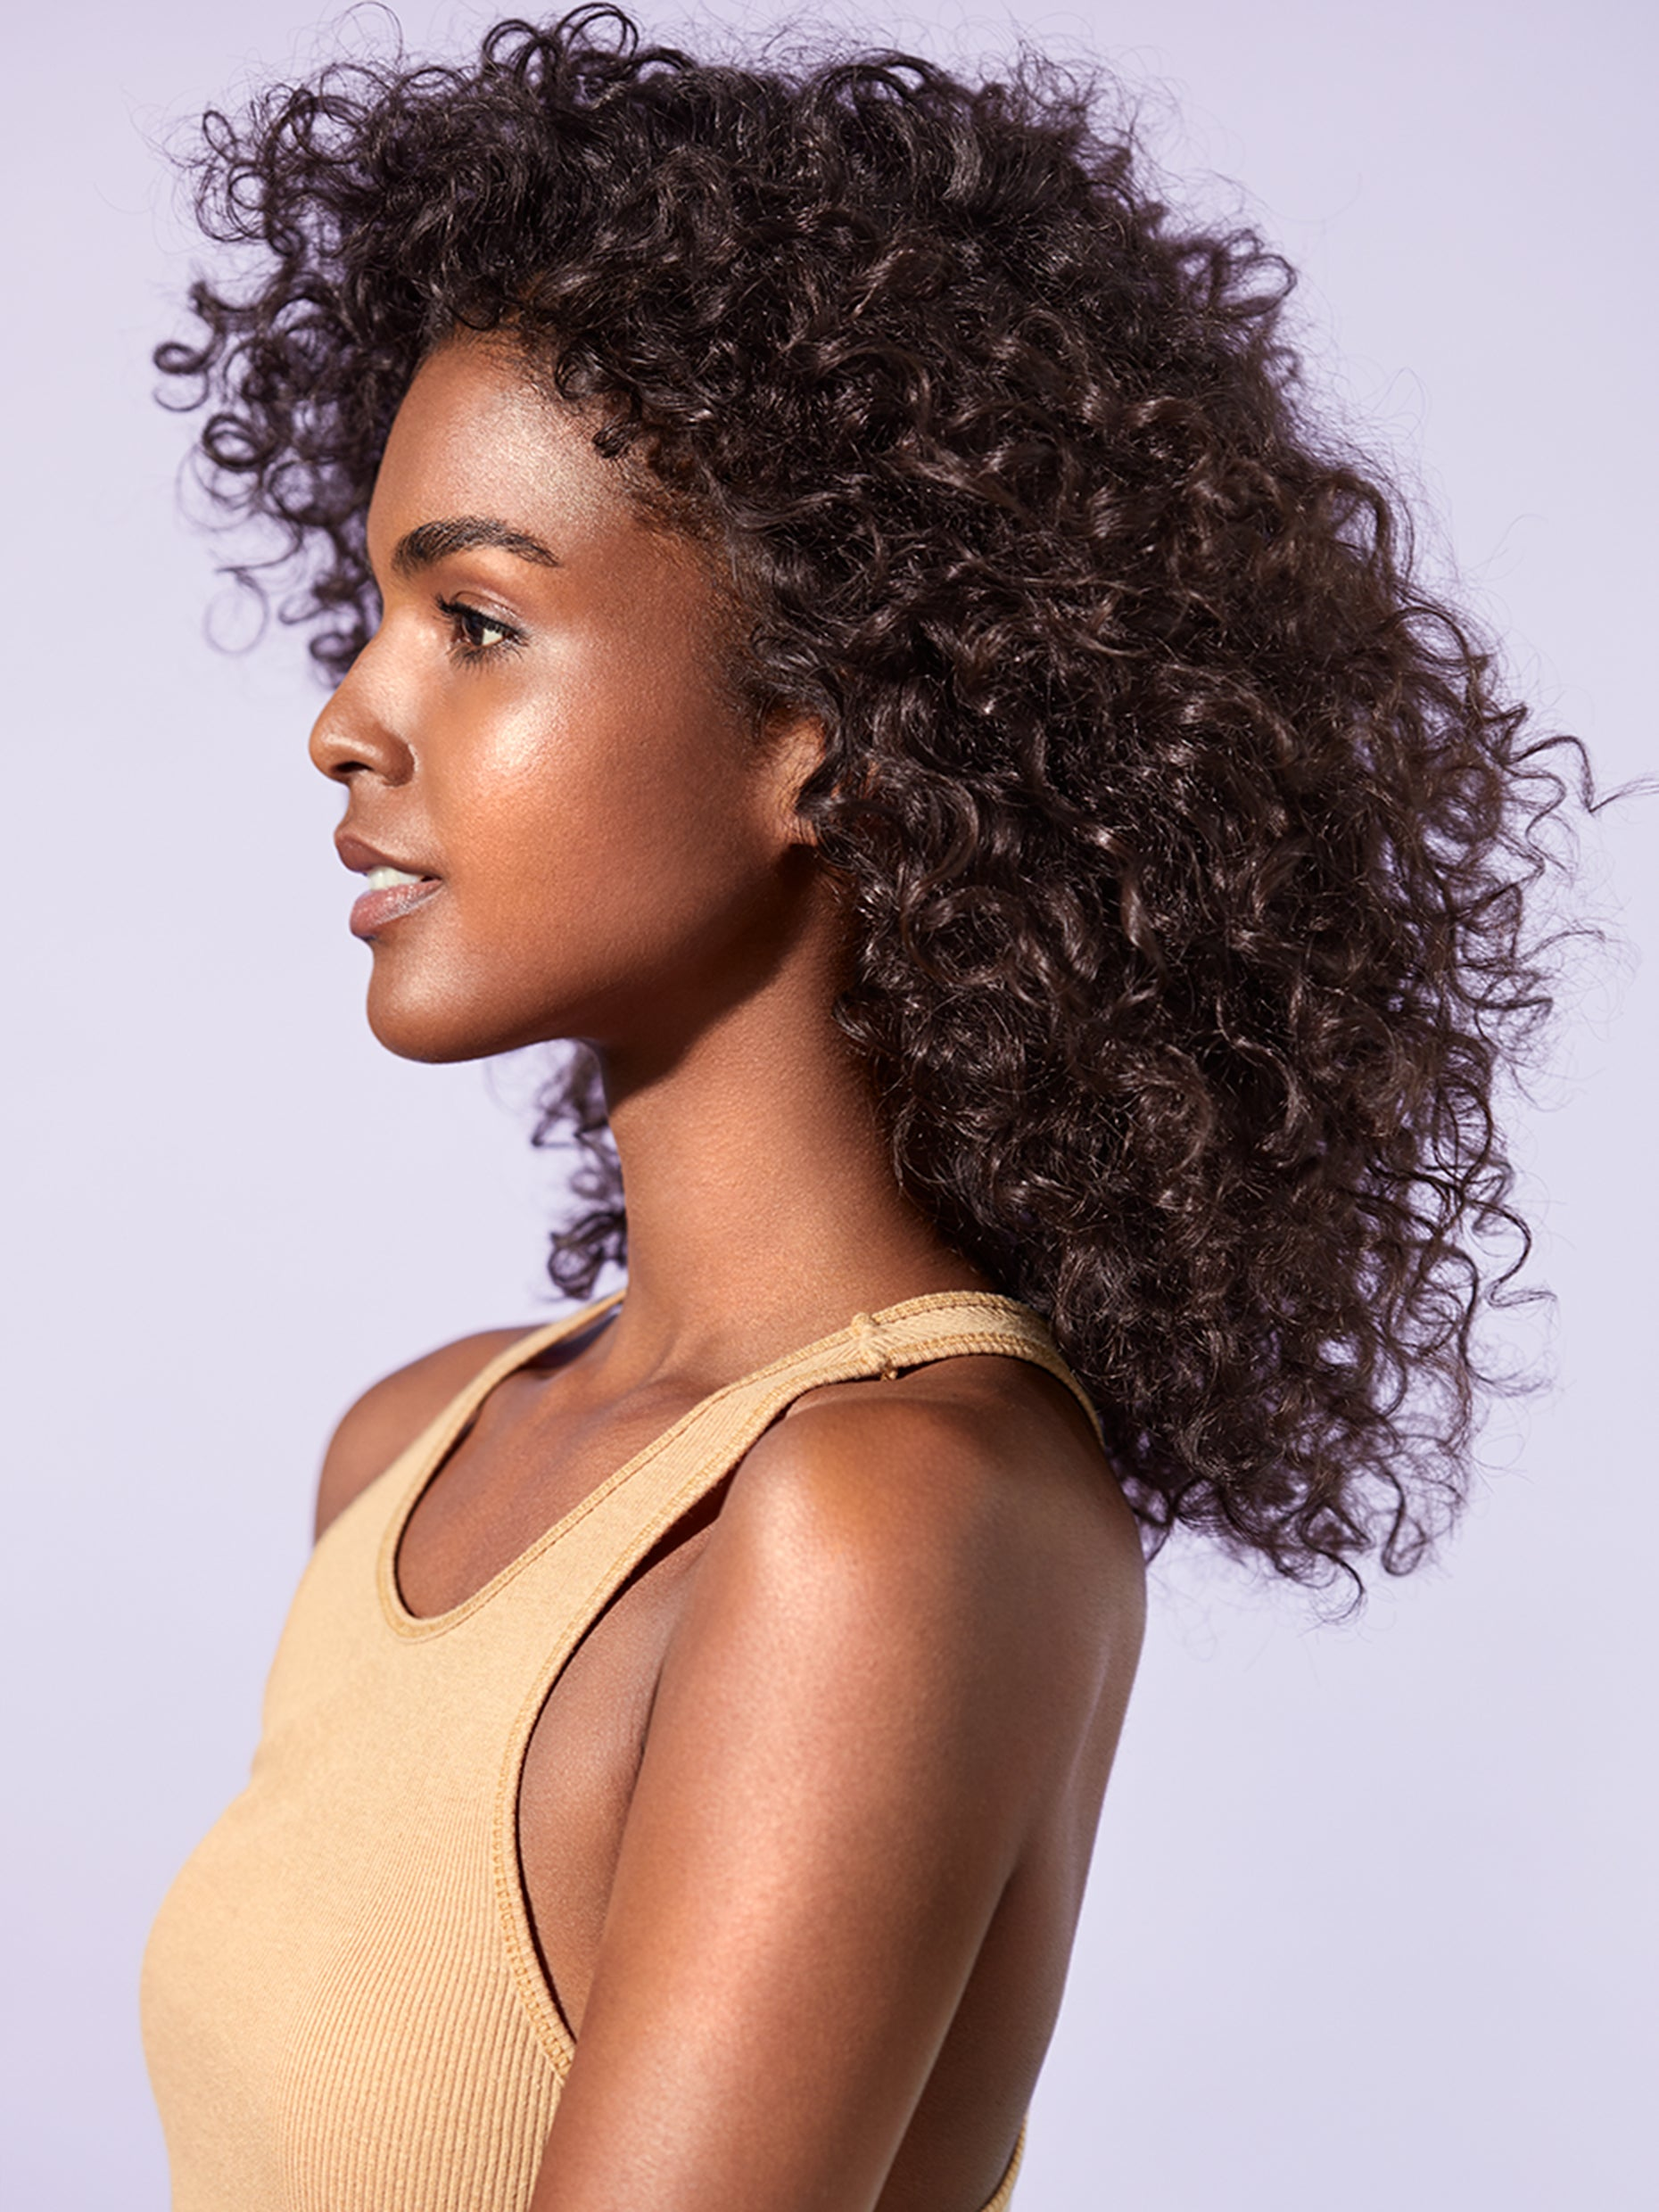 Side profile look of hair after product use